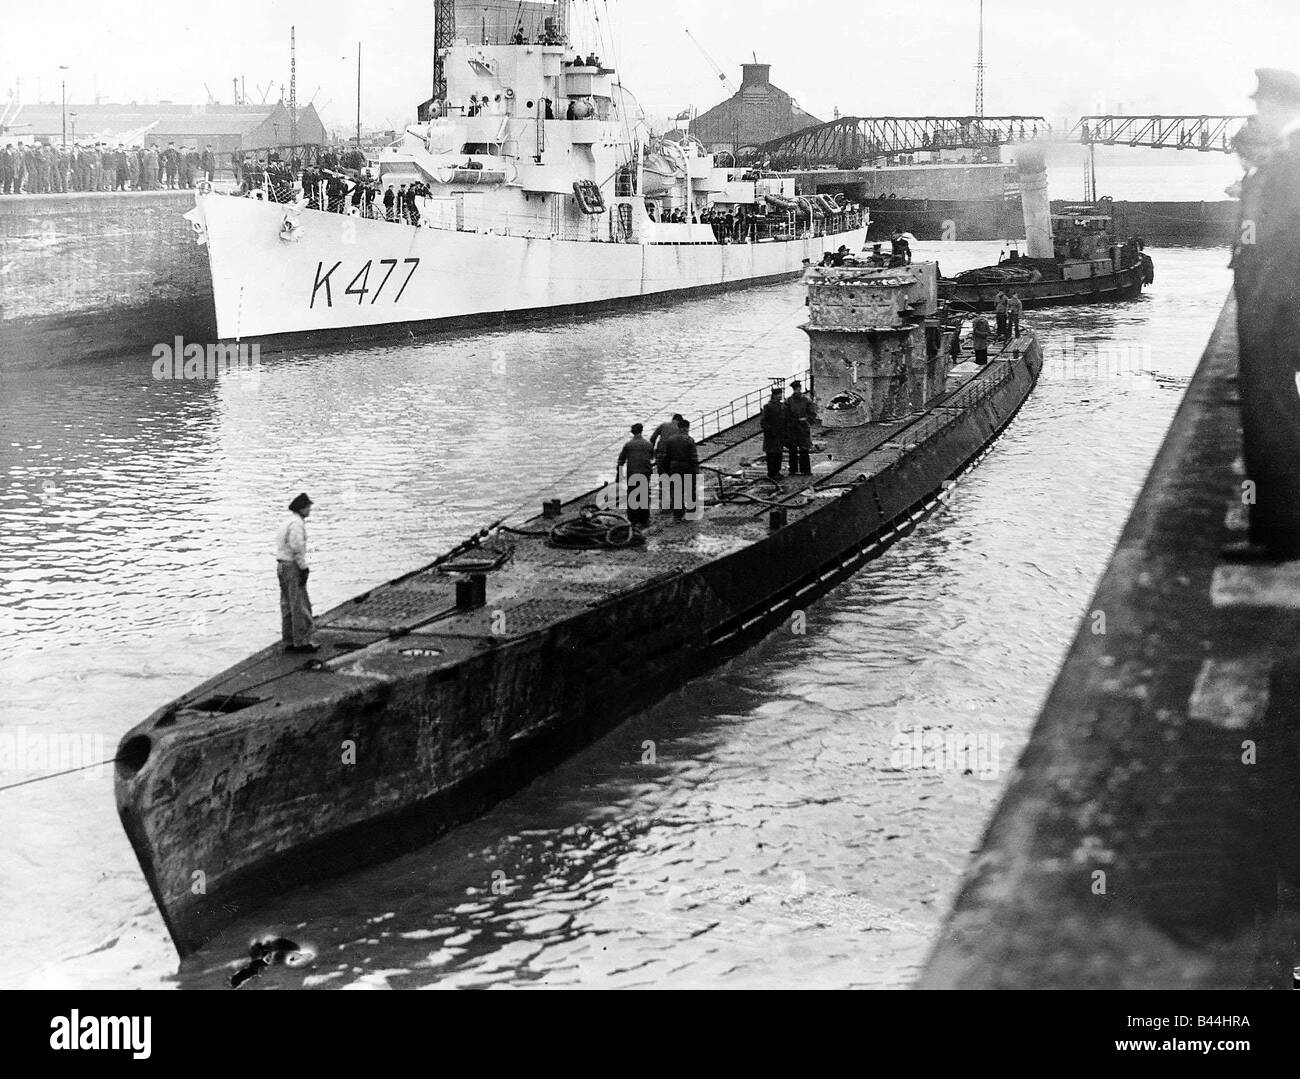 A Captured German U Boat In A Gladstone Dock After Being